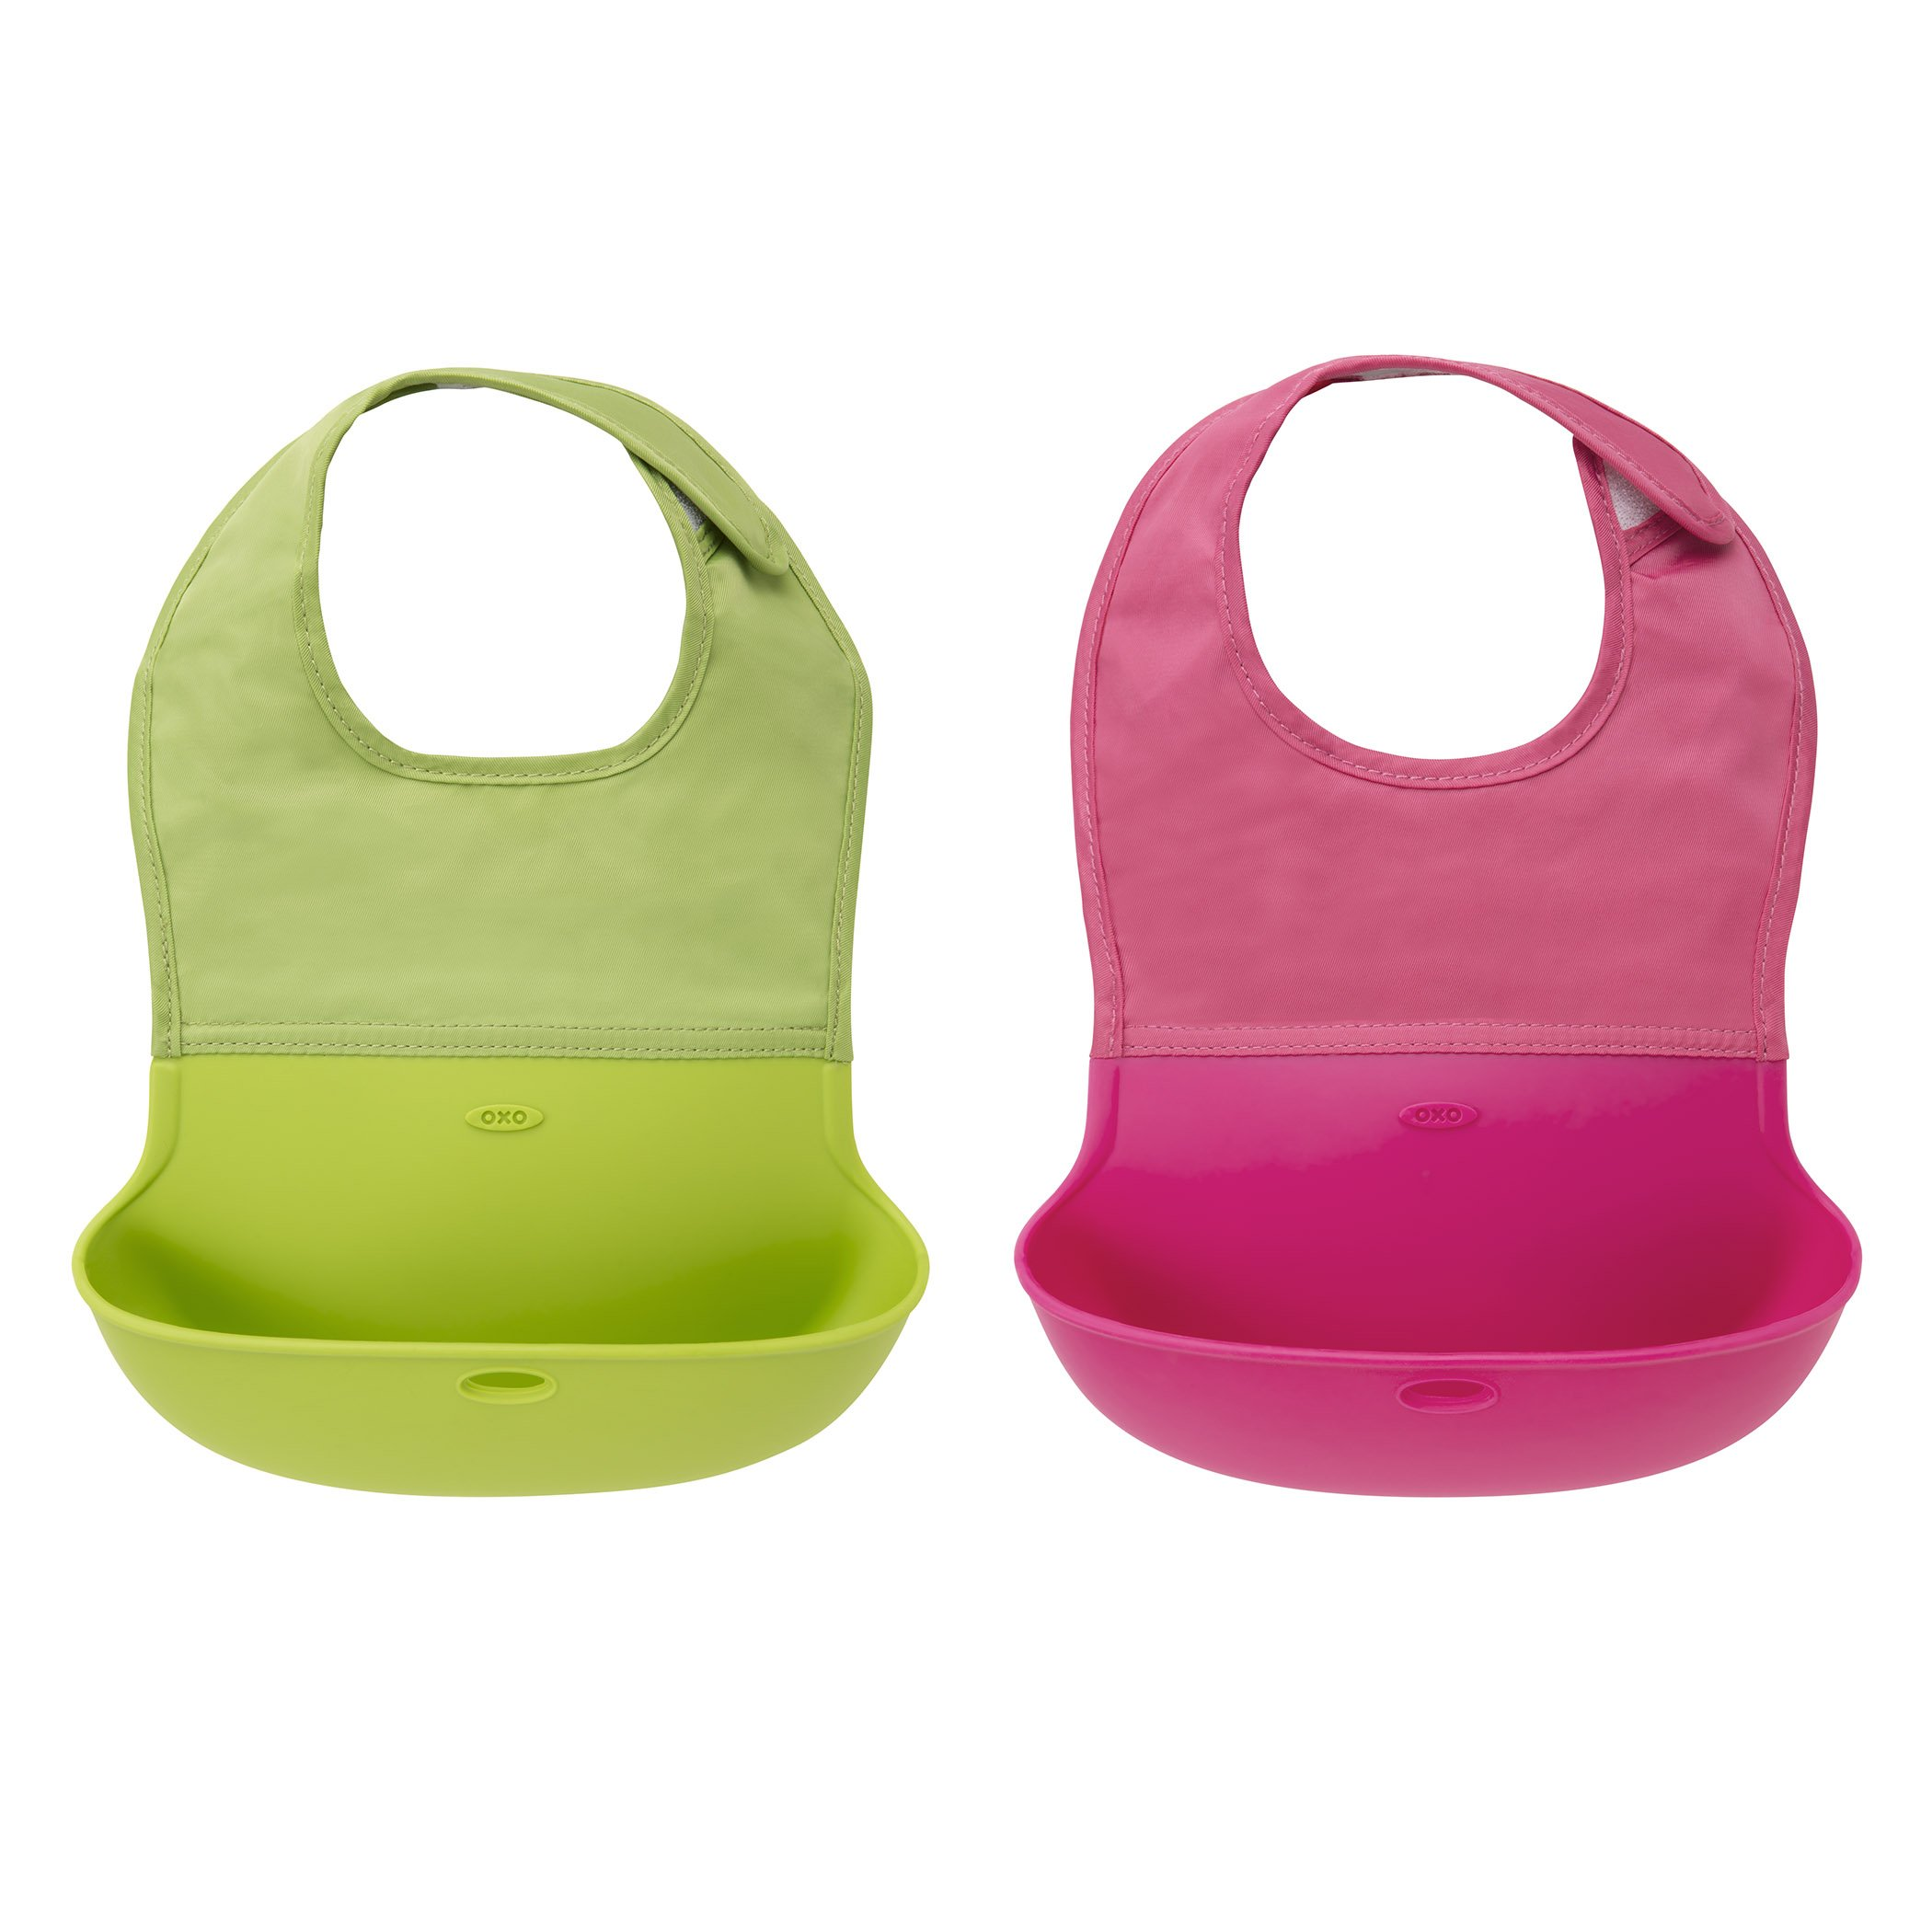 OXO Tot Waterproof Silicone Roll Up Bib With Comfort Fit Fabric Neck, 2 Pack